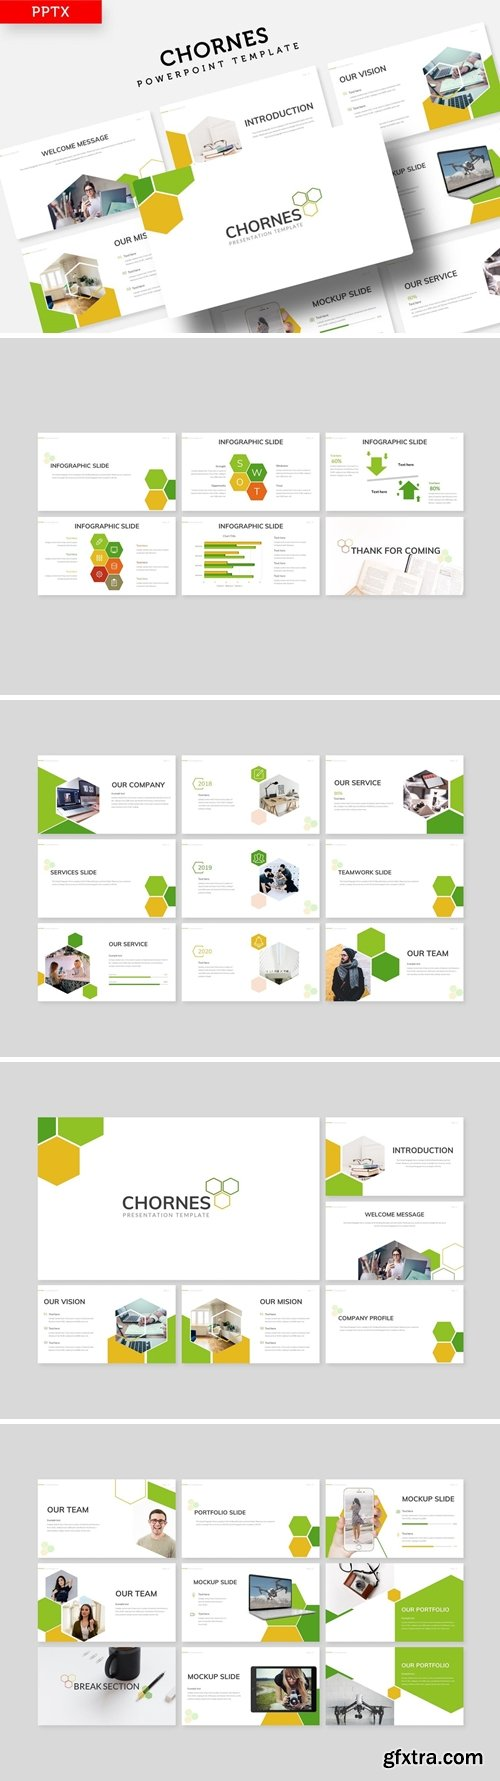 Chornes Powerpoint, Keynote and Google Slides Templates